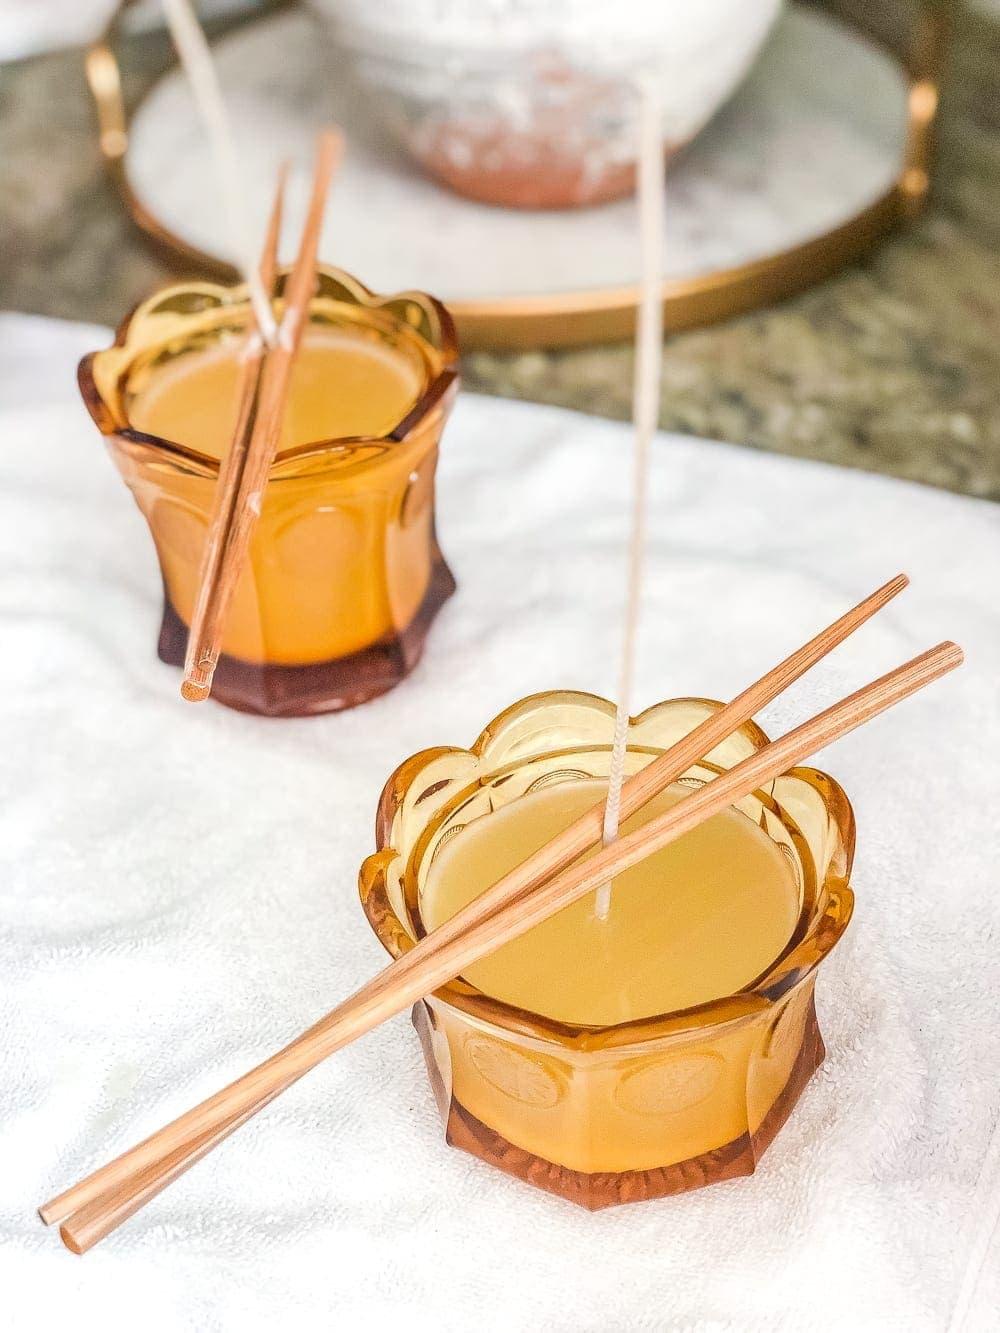 A basic, beginner's step-by-step tutorial for making soy wax candles from repurposed secondhand candy dishes, tea cups, bowls, and jars.